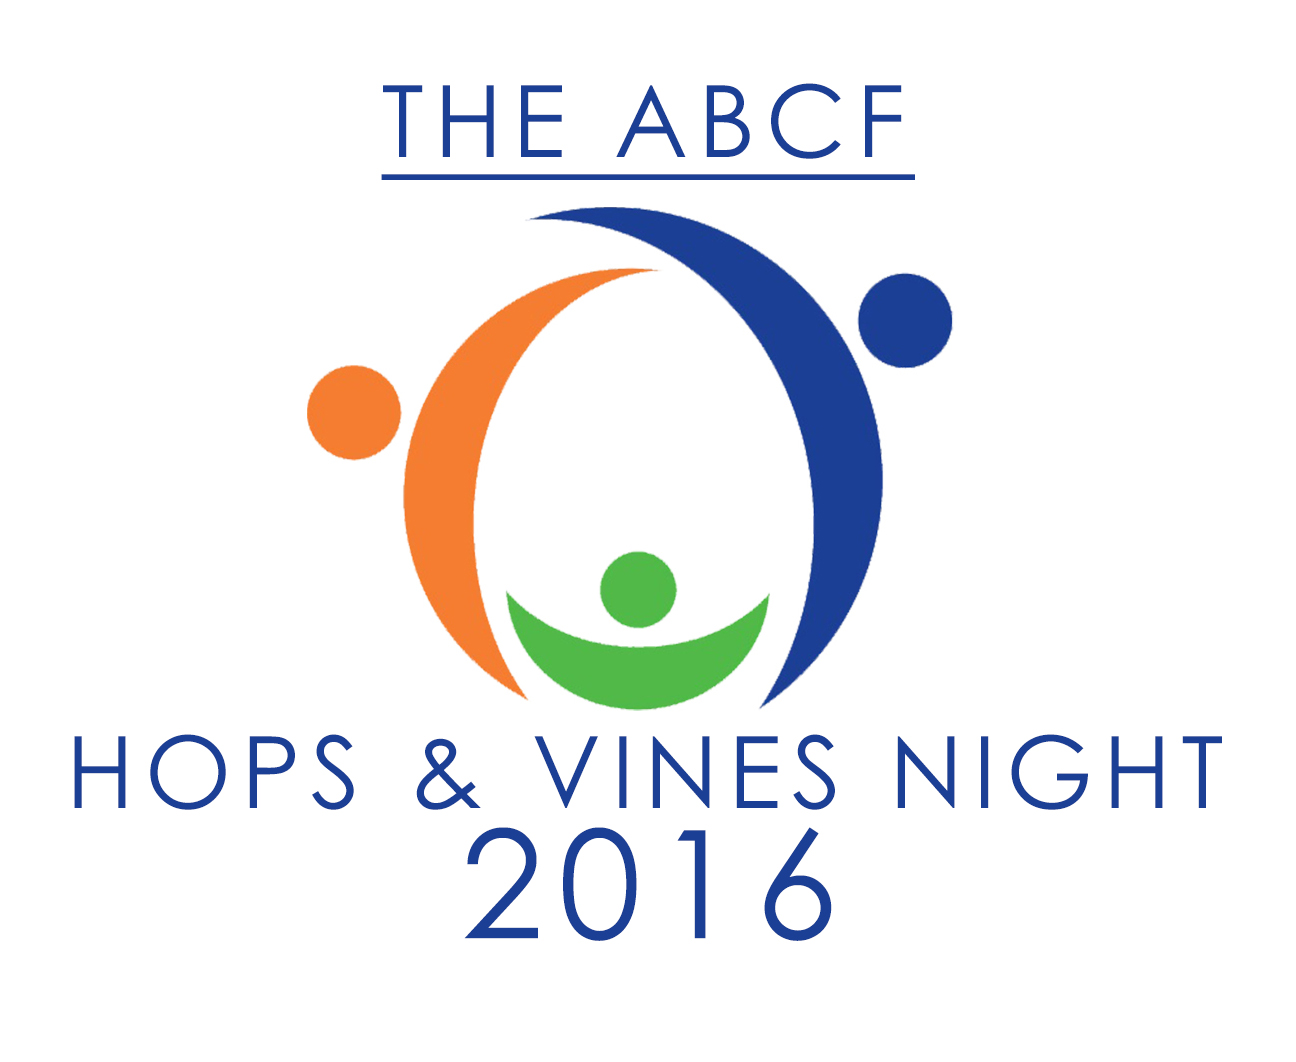 The ABCF Hops & Vines Night 2016